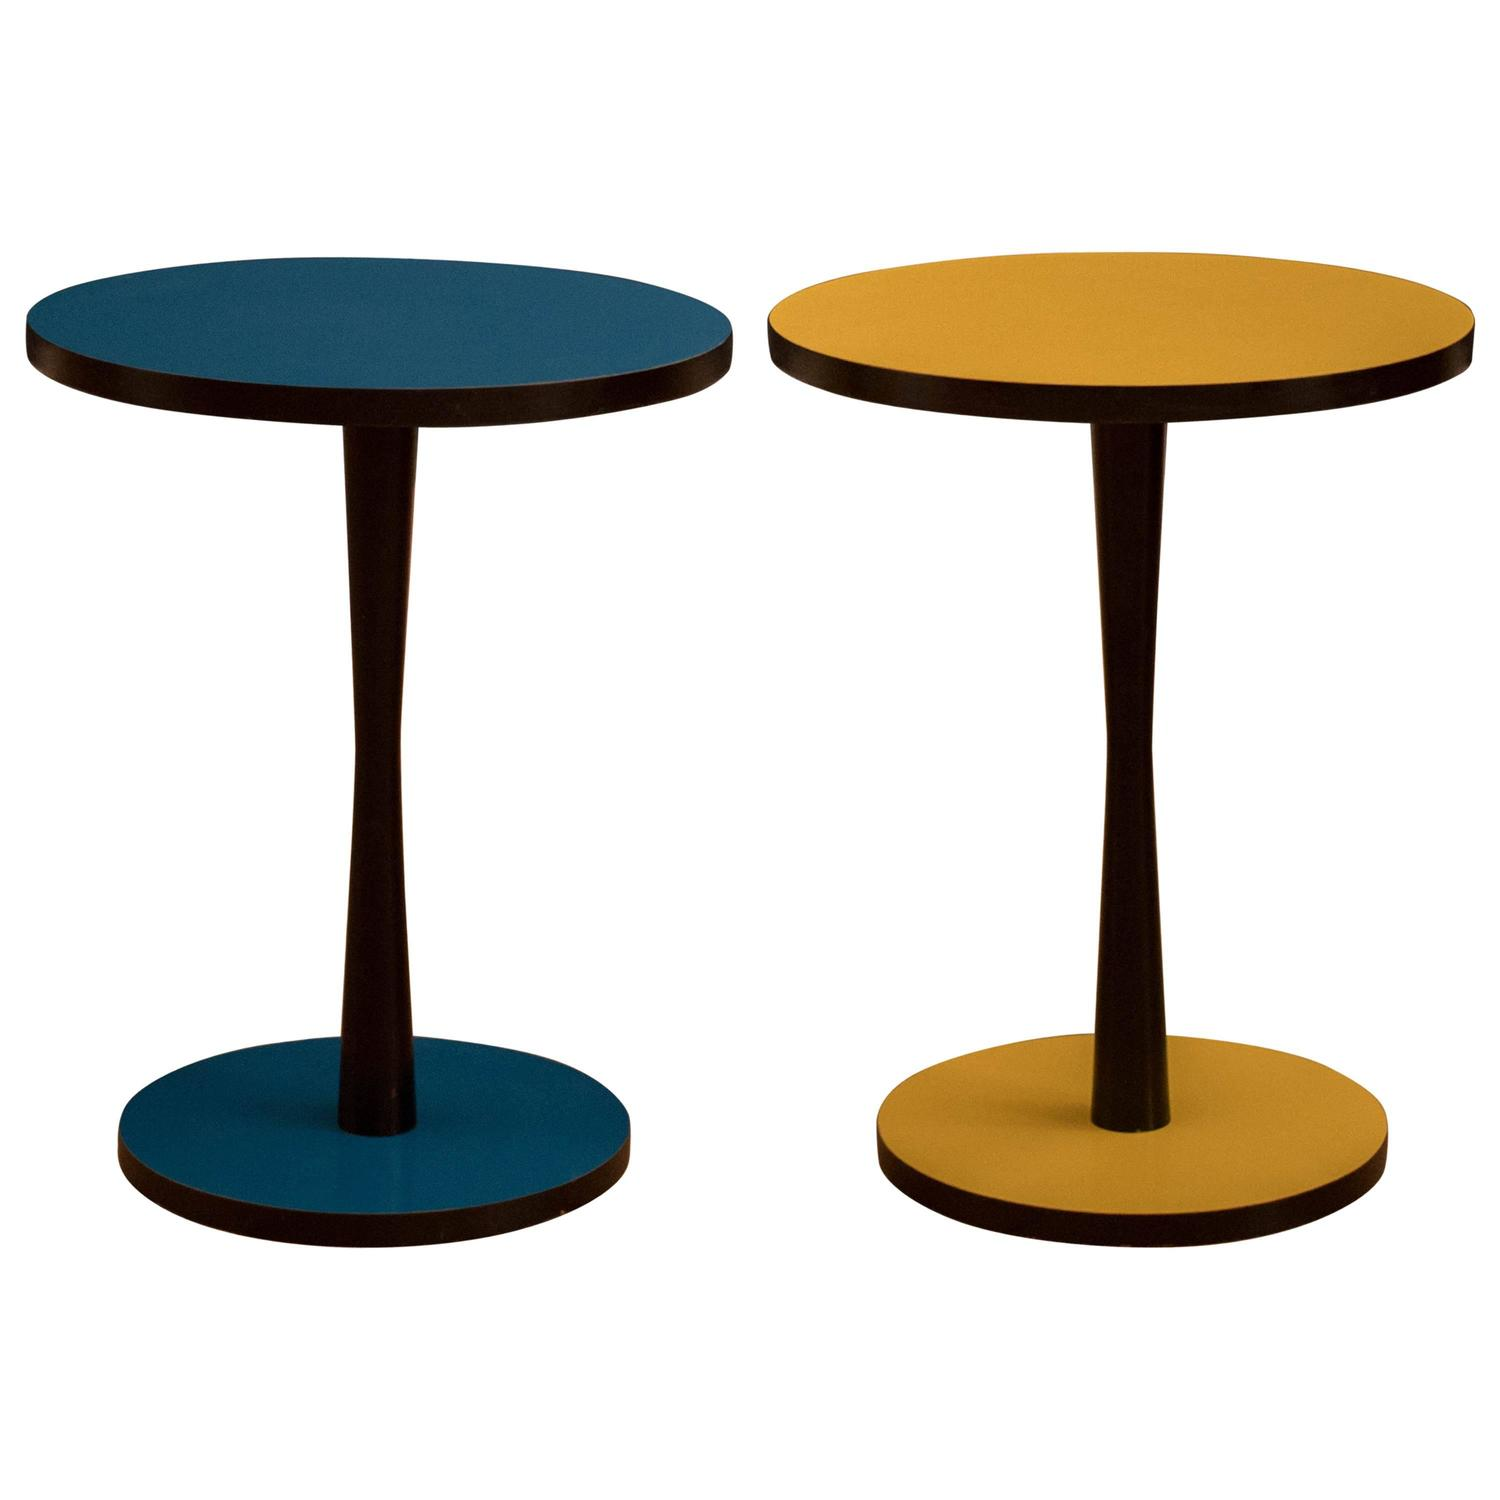 vintage pop art pedestal side tables for sale at 1stdibs. Black Bedroom Furniture Sets. Home Design Ideas